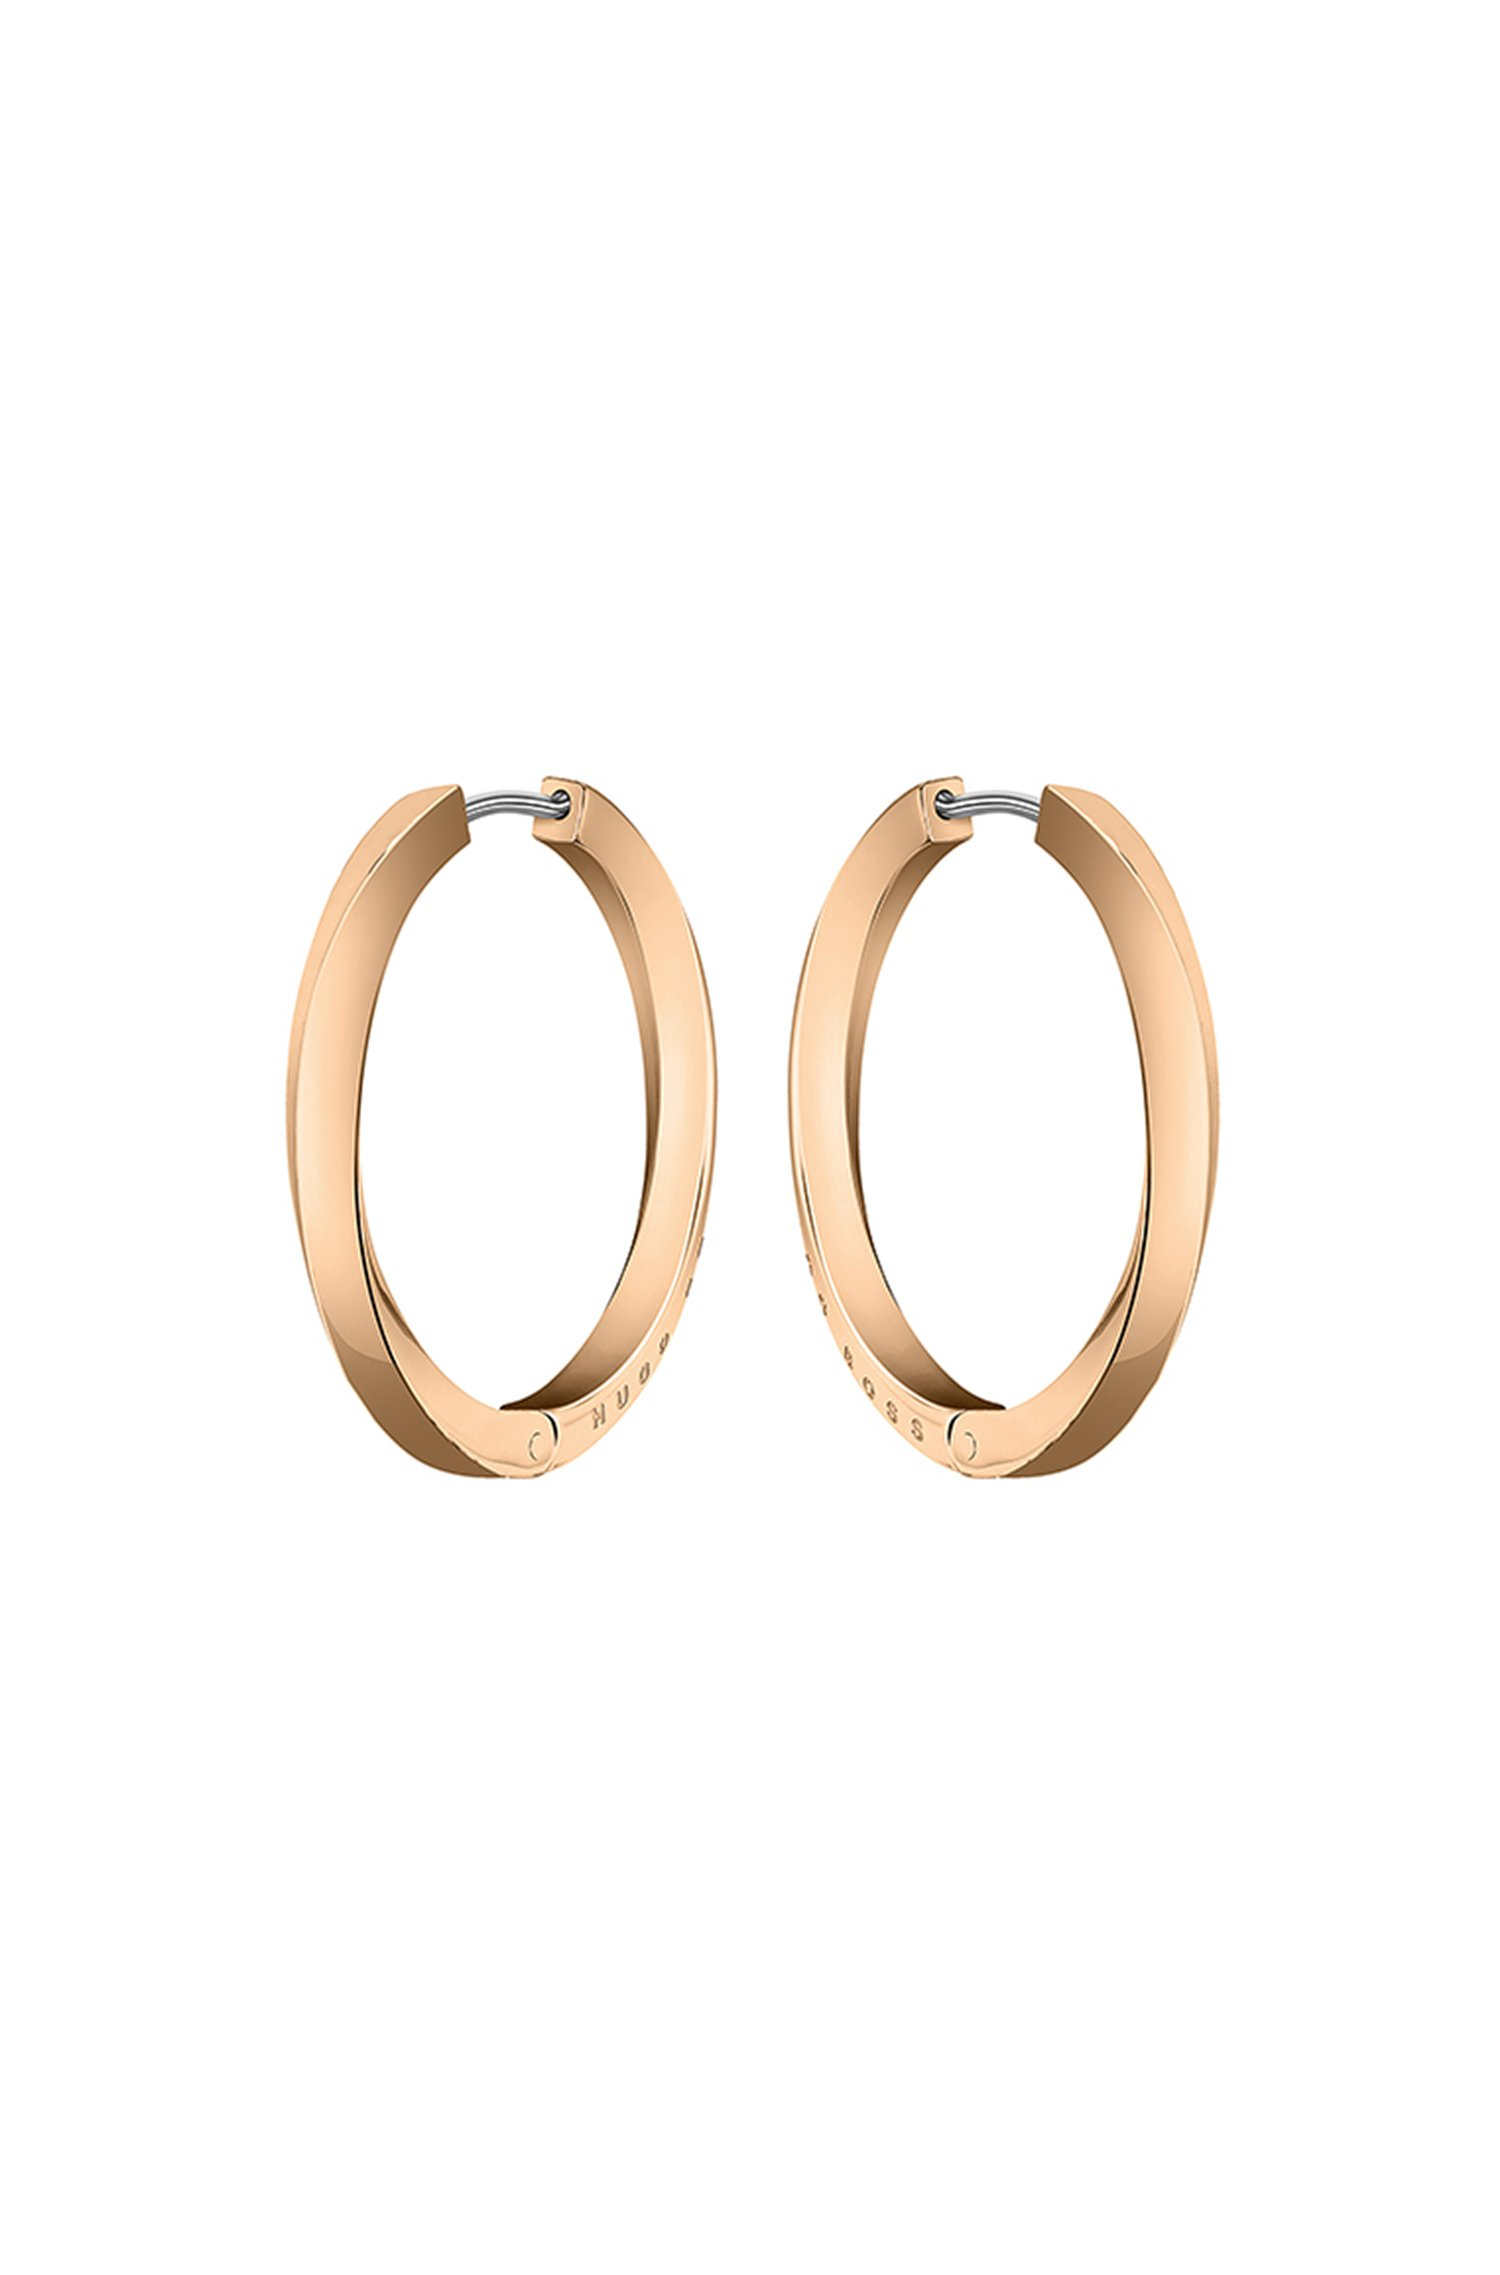 Twisted-bar hoop earrings in a carnation-gold finish, Assorted-Pre-Pack